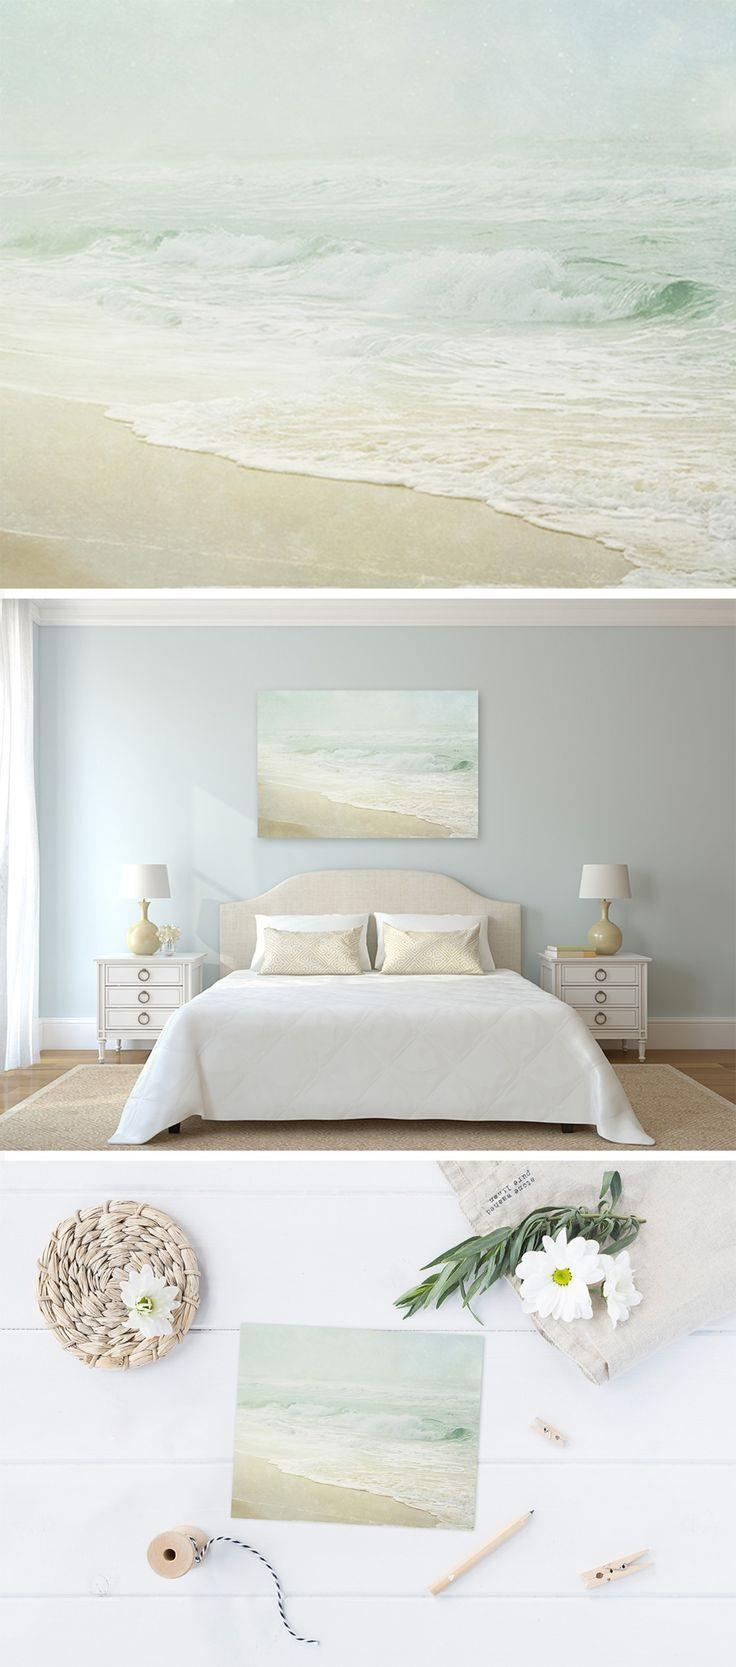 Best 25+ Home Coastal Art Ideas On Pinterest | Extra Large Wall For Beach Cottage Wall Art (Image 7 of 20)